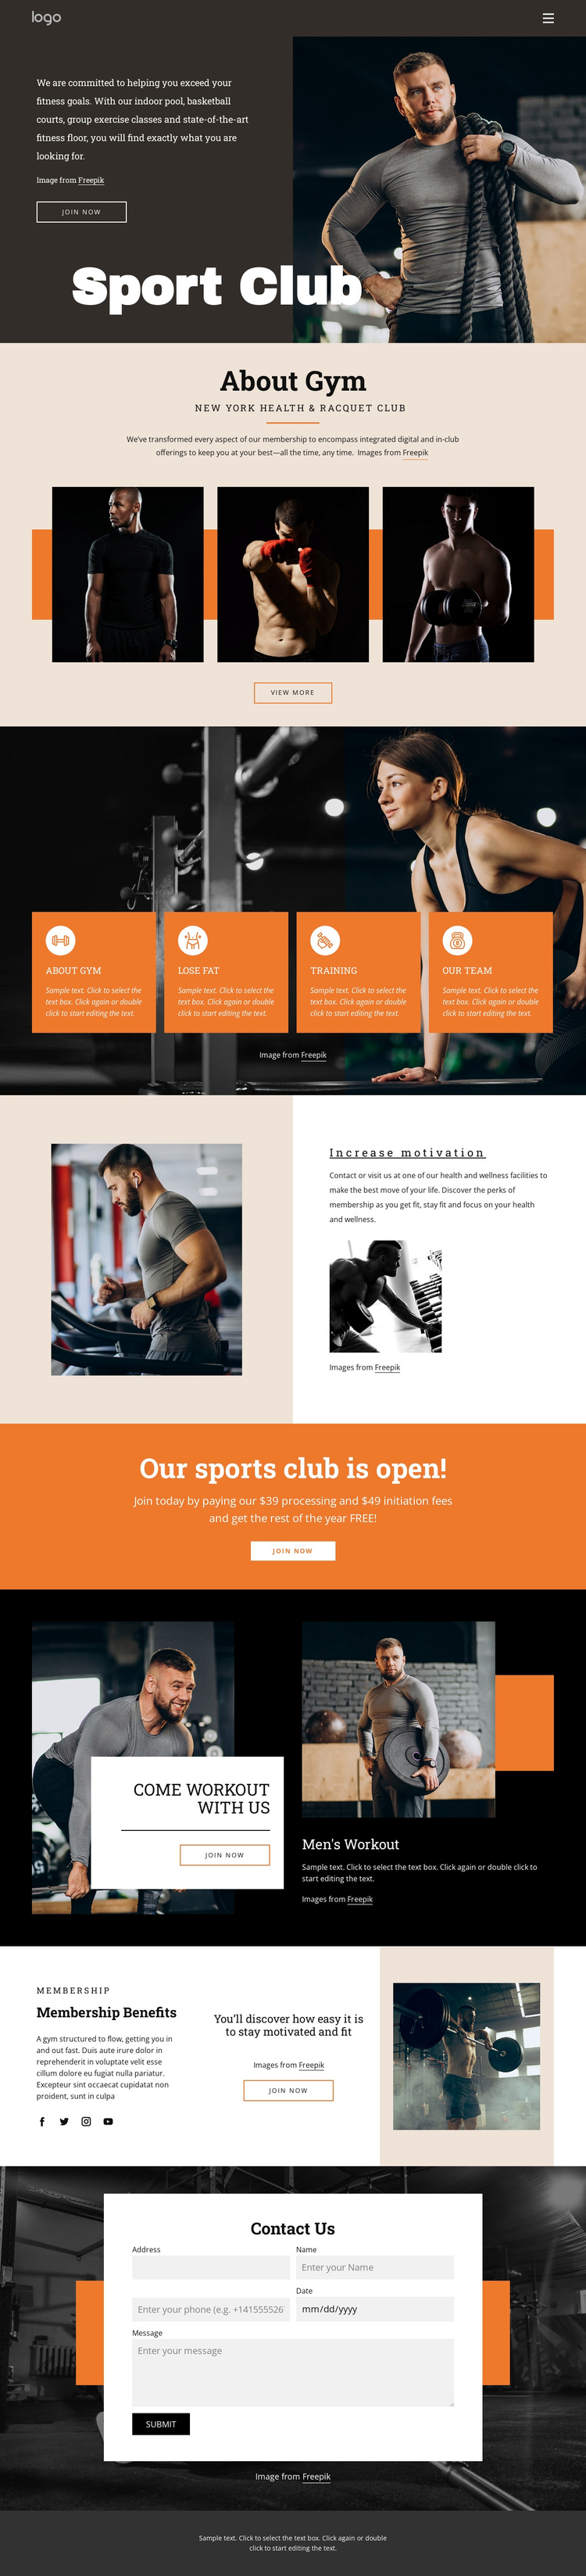 Convenient personal training programs Website Builder Software